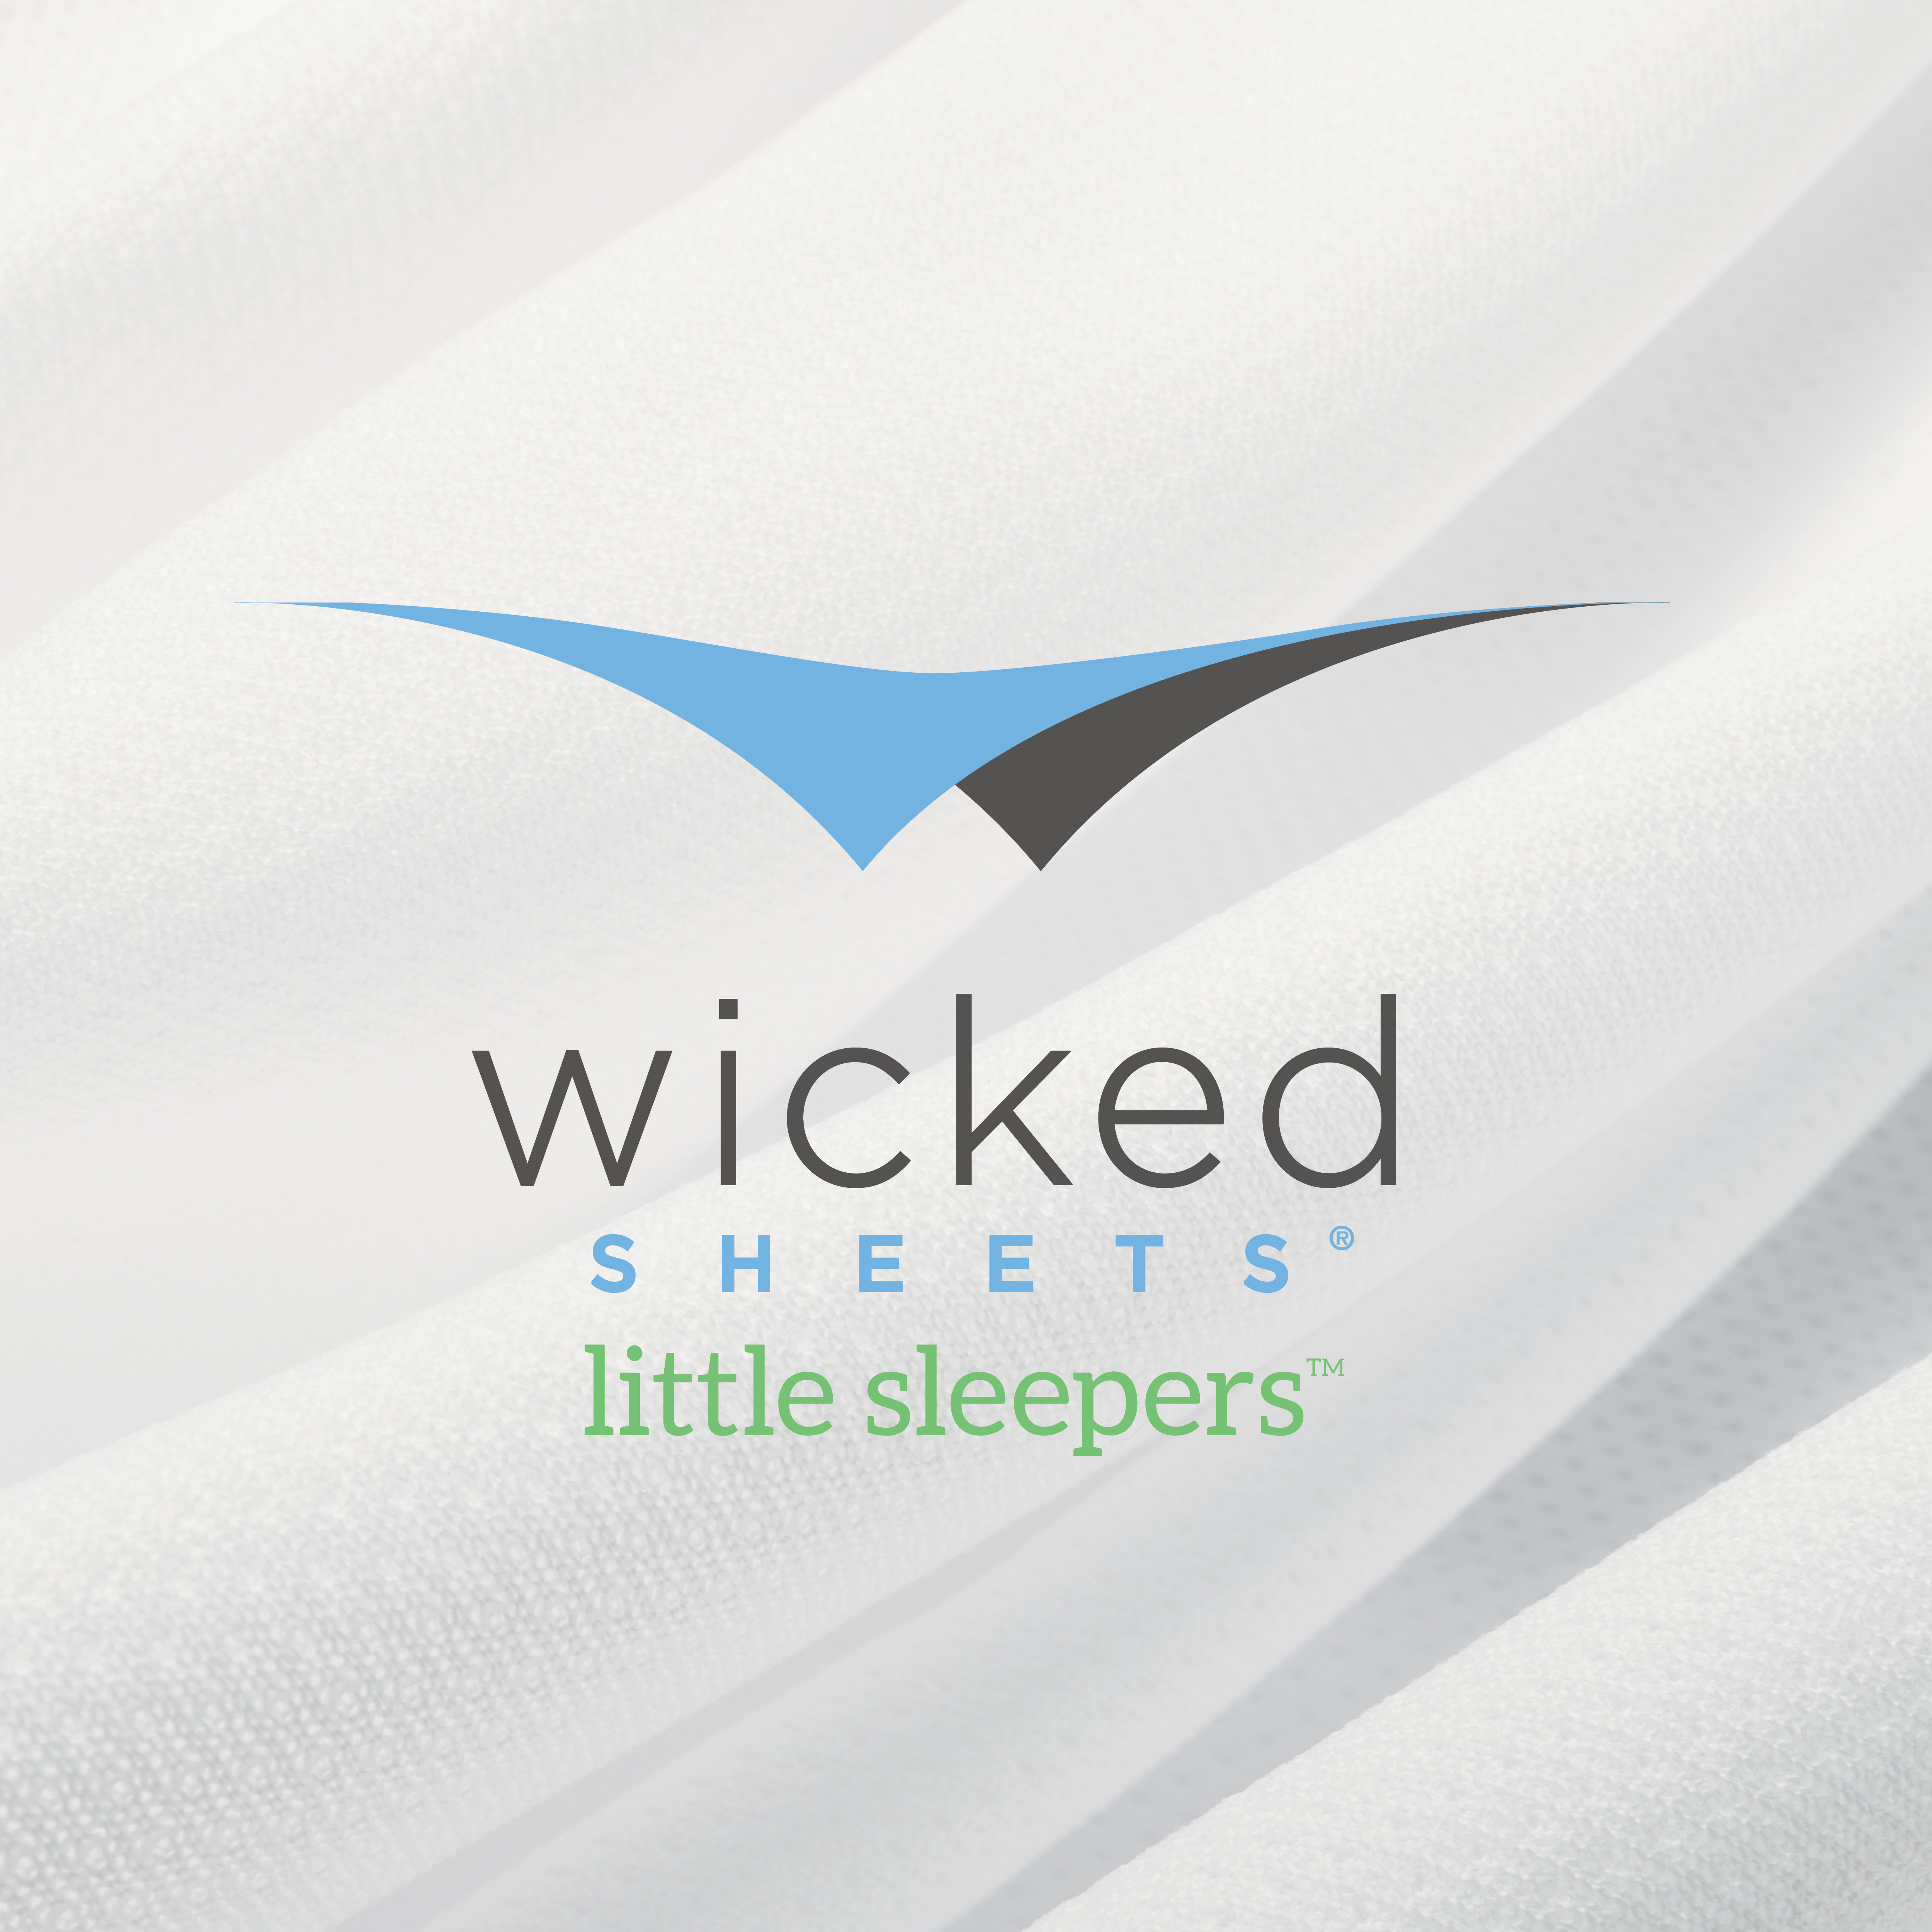 wicked sheets little sleepers